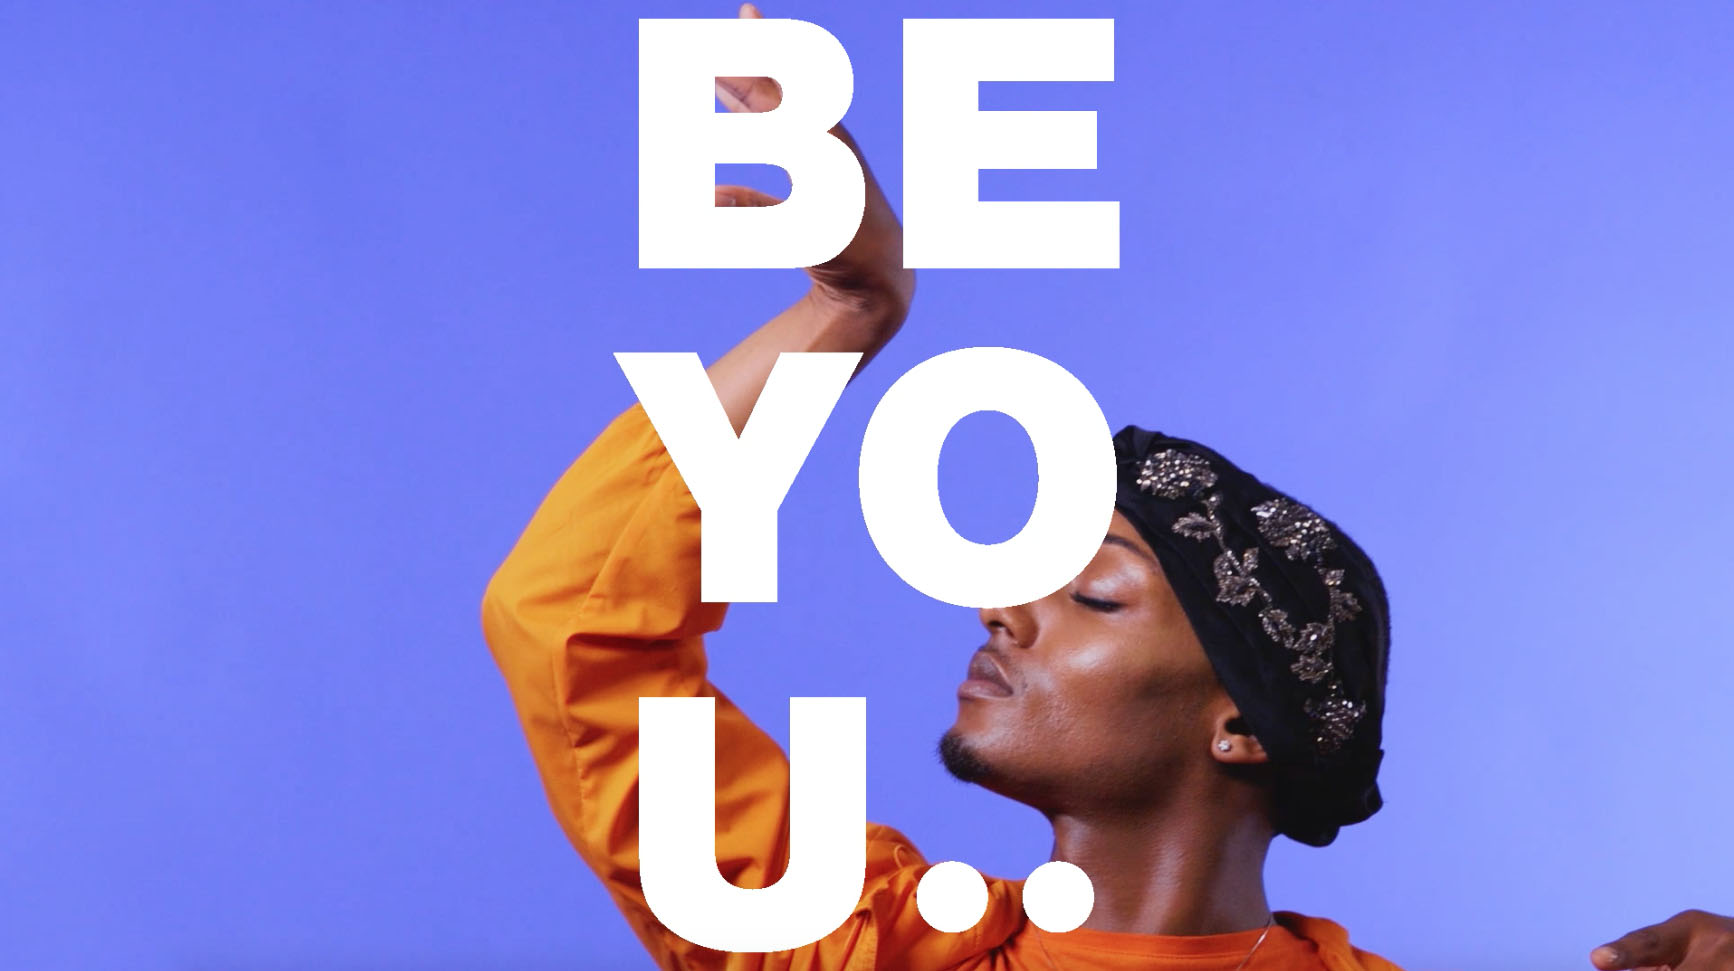 Blink Fitness' #BEYOU campaign for Pride Month encourages strength and empowerment through a vibrant dance video showcasing the NYC vogue scene's fearless self-expression.